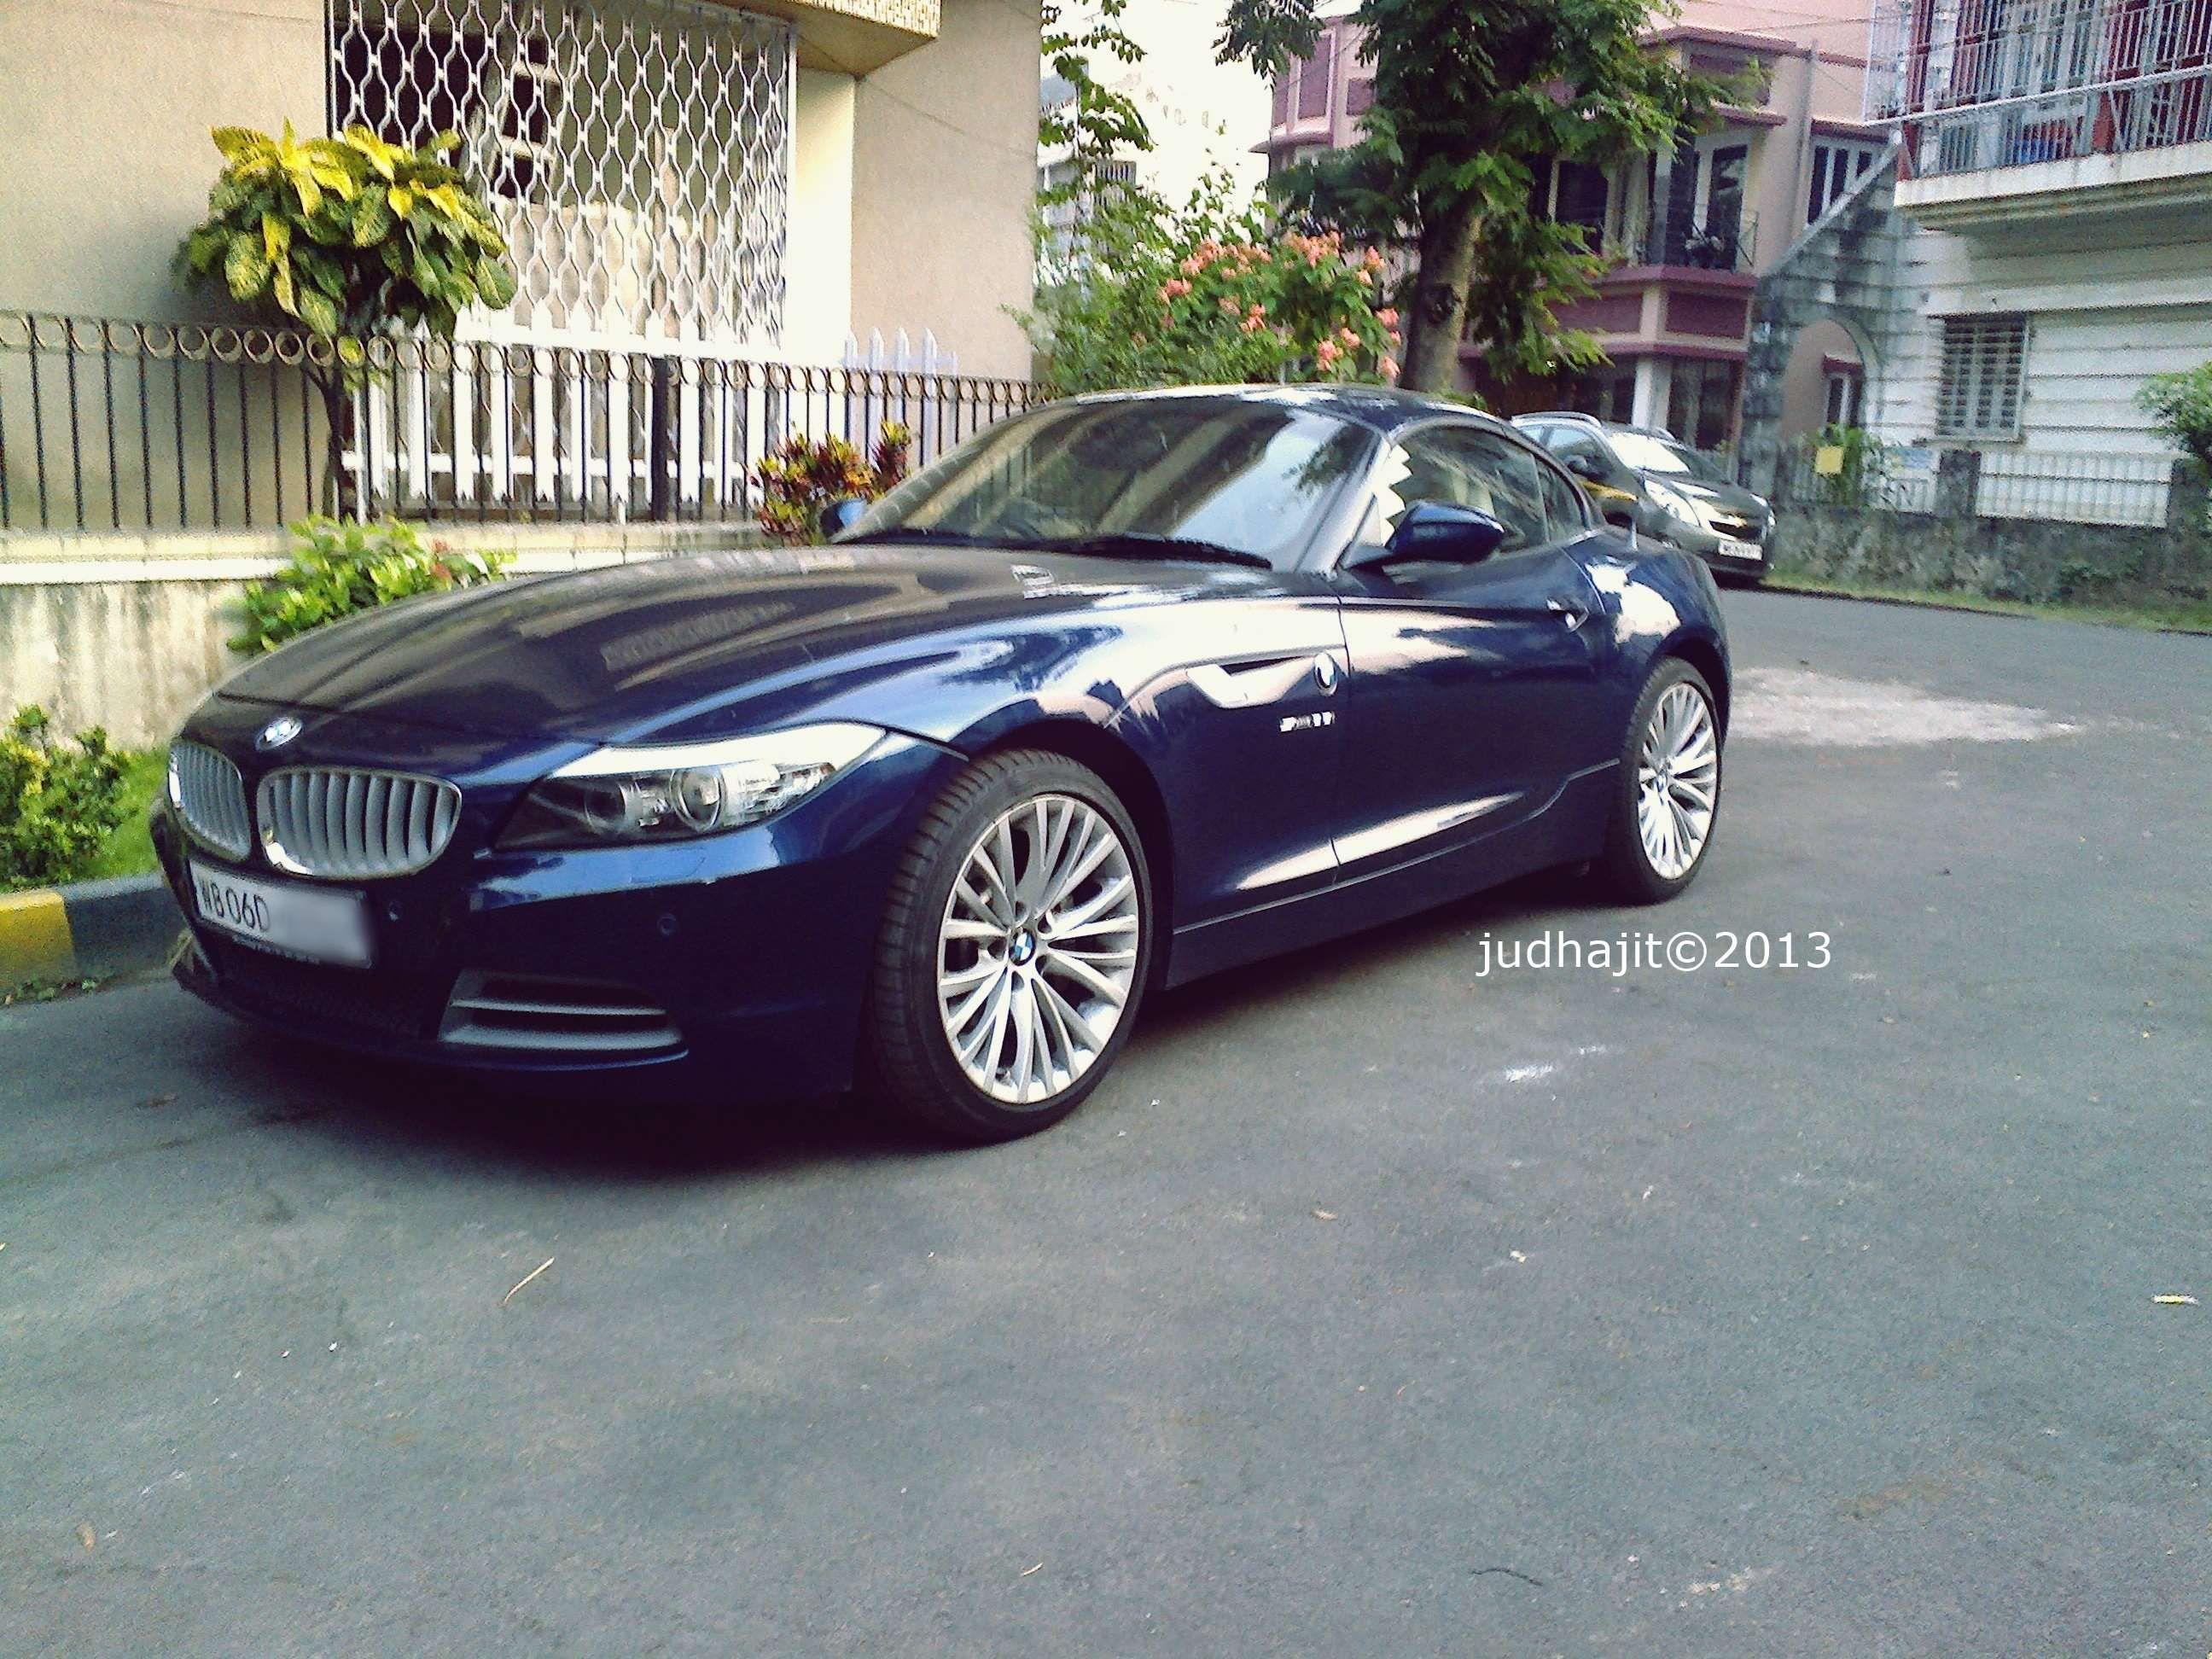 Automobile Automobiles Automotive Bmw Bmw Z4 Car Cars Road